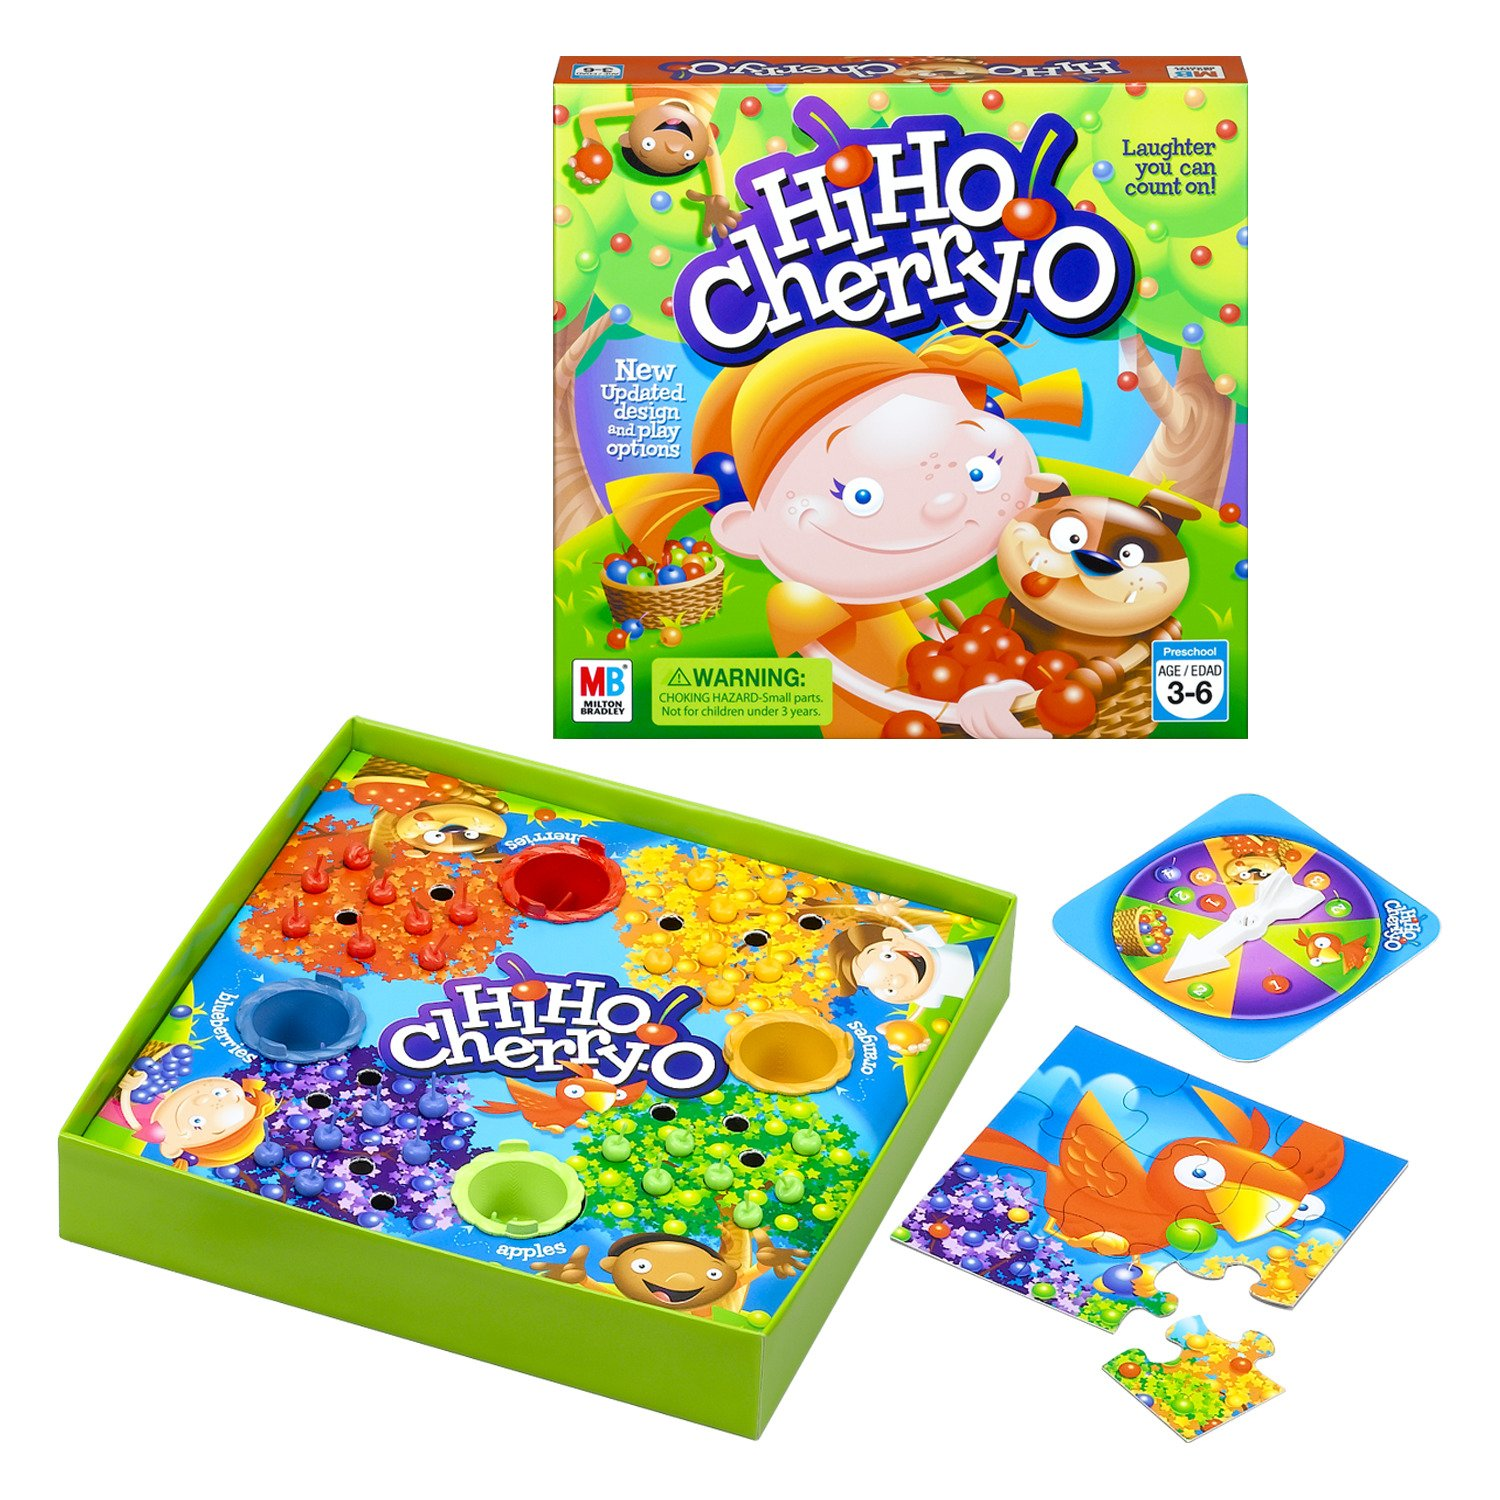 Amazon Hi Ho Cherry O Game Amazon Exclusive Toys & Games